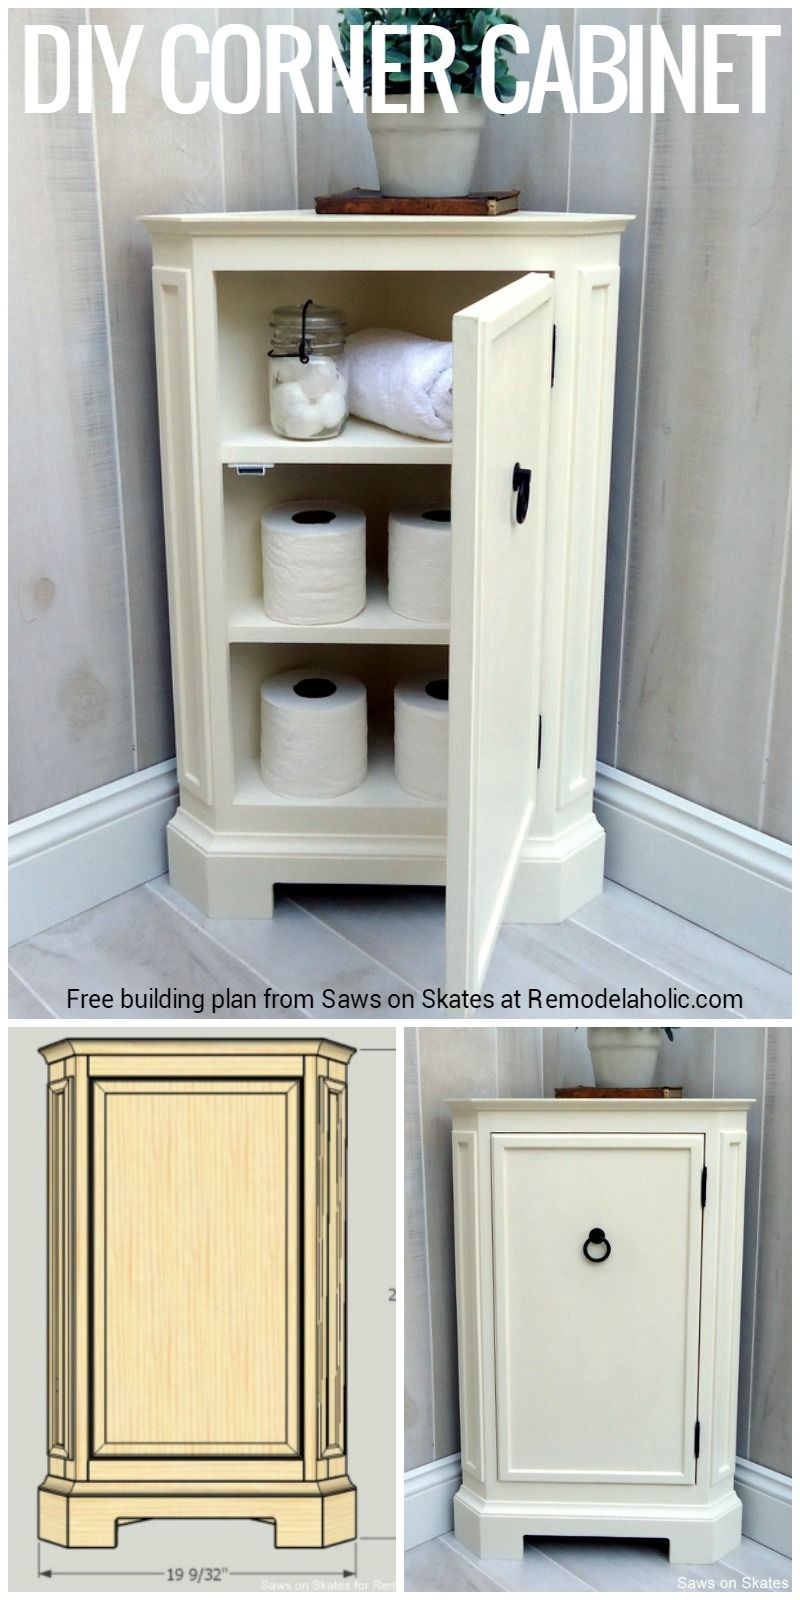 Build This Space Smart Corner Cabinet With The Free Building Plans